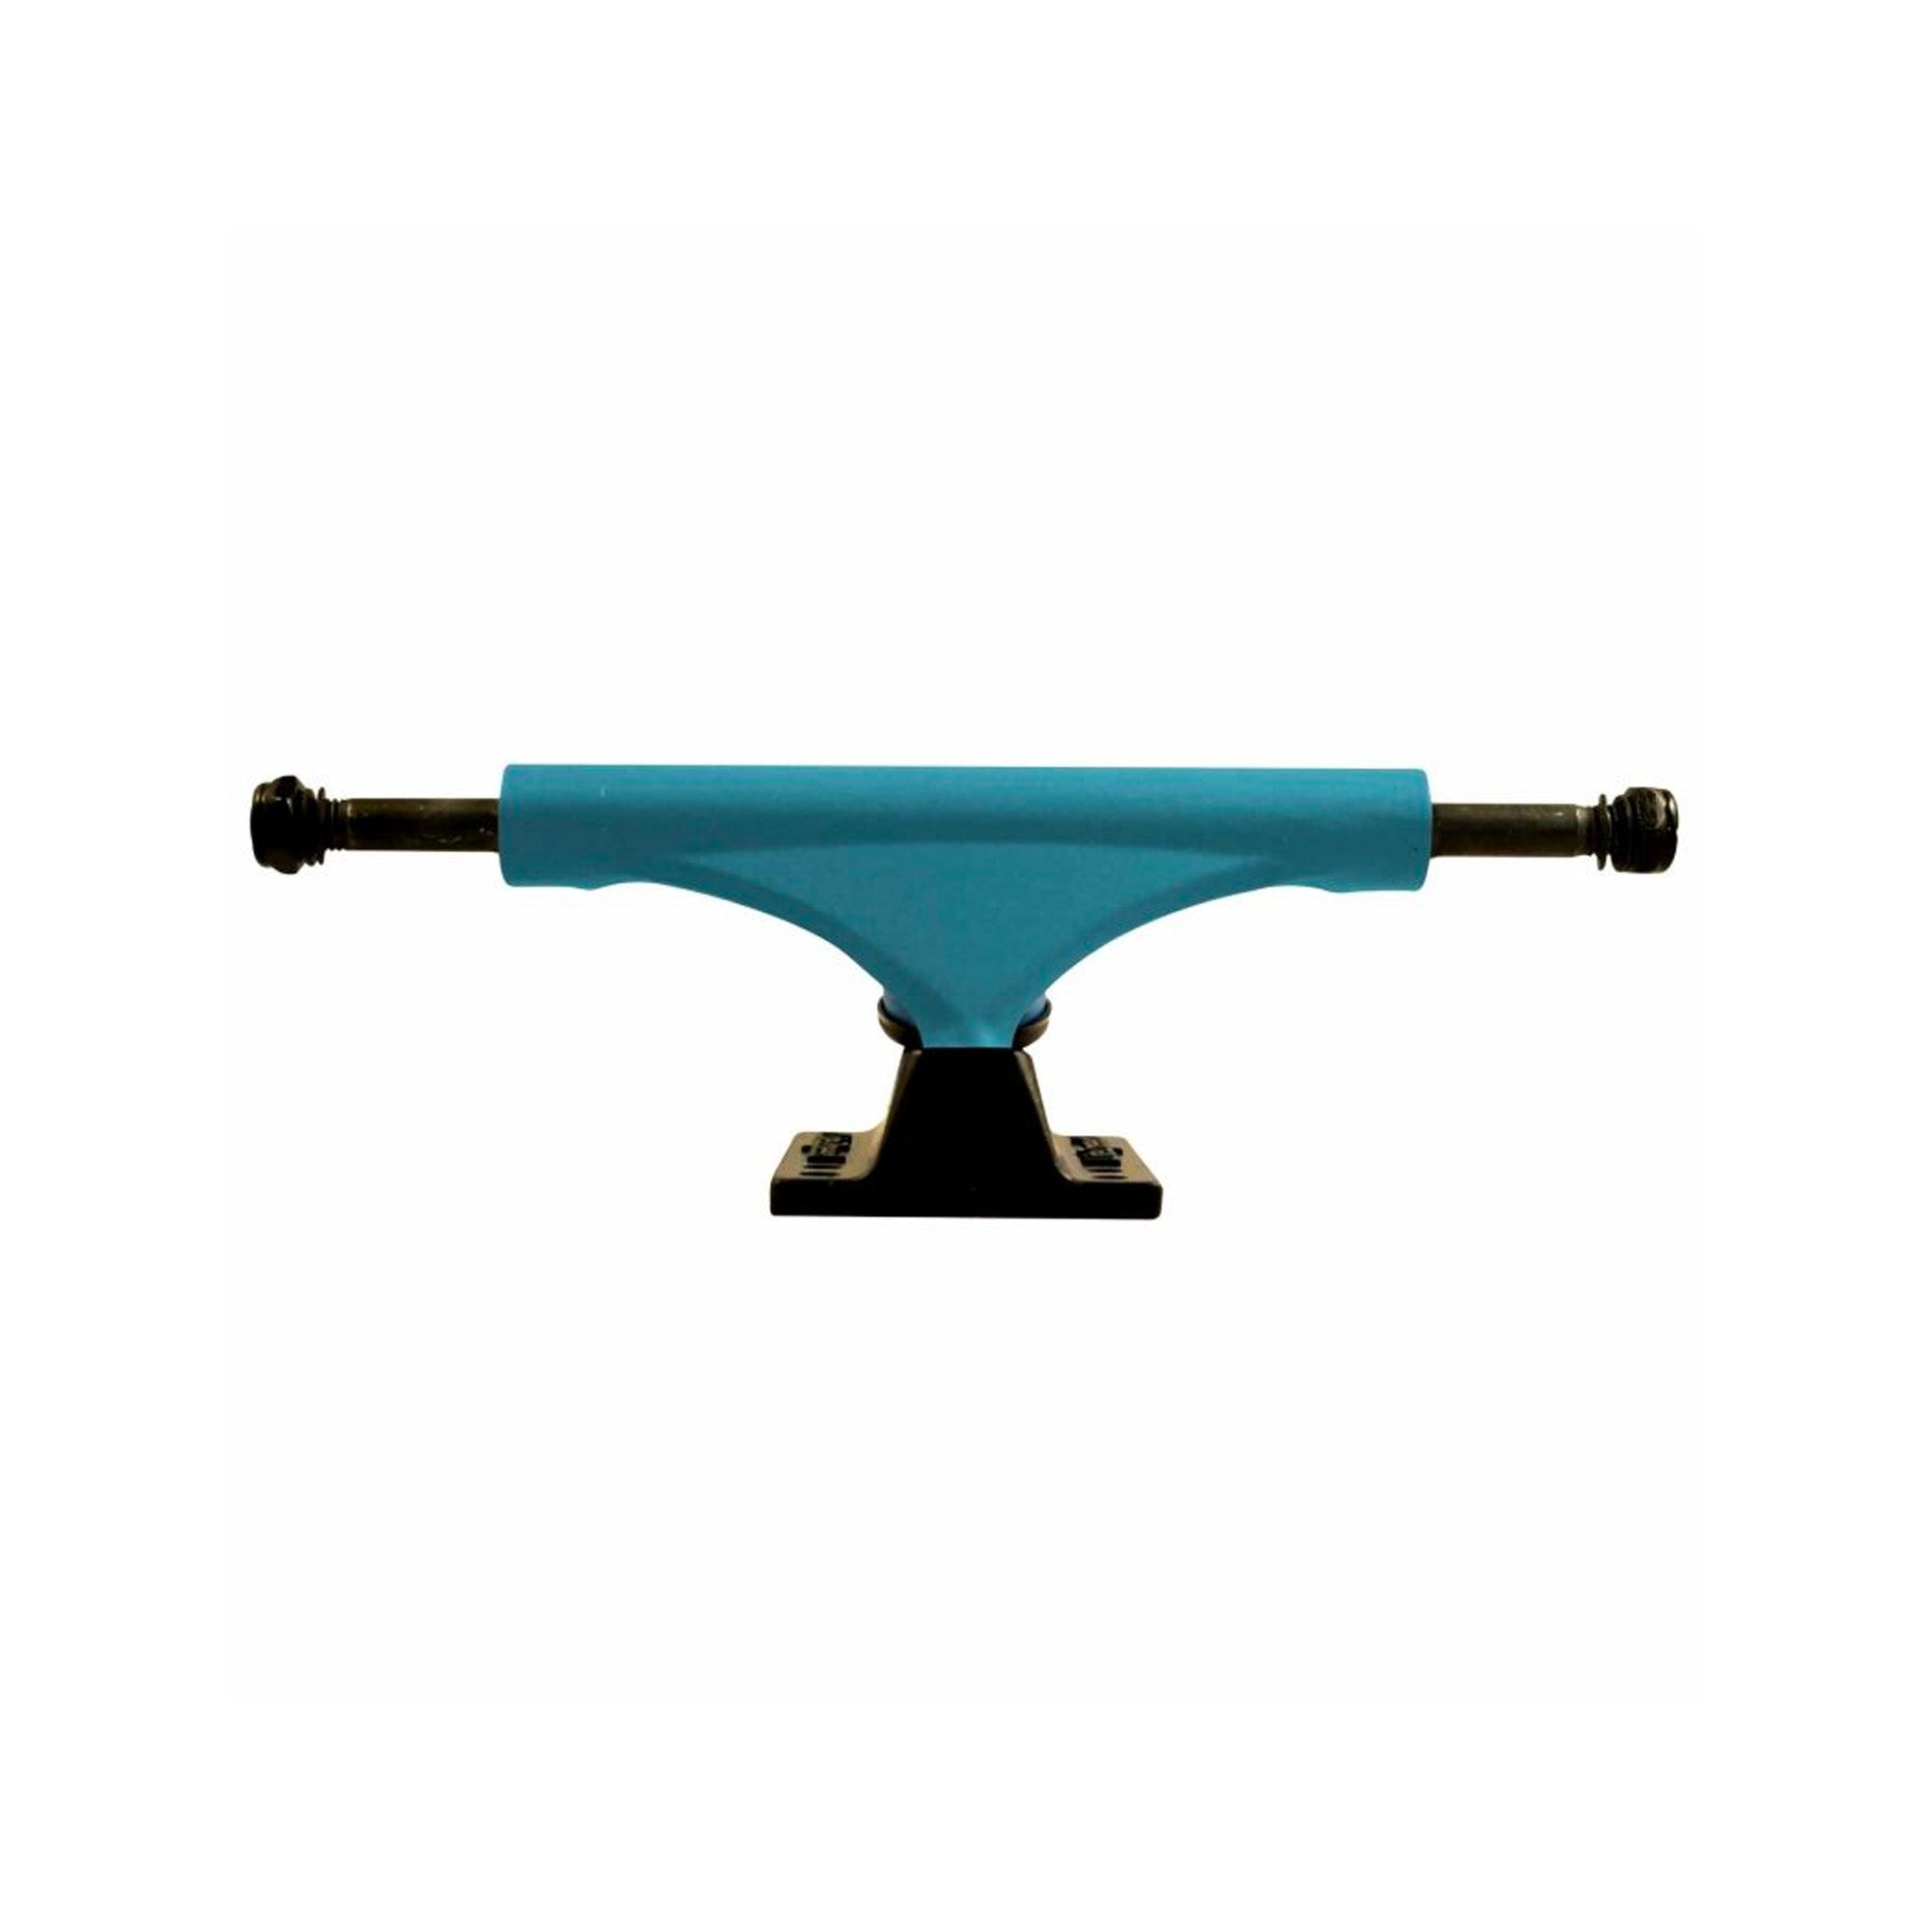 Litezpeed Truck Set 5.25 - Cyan